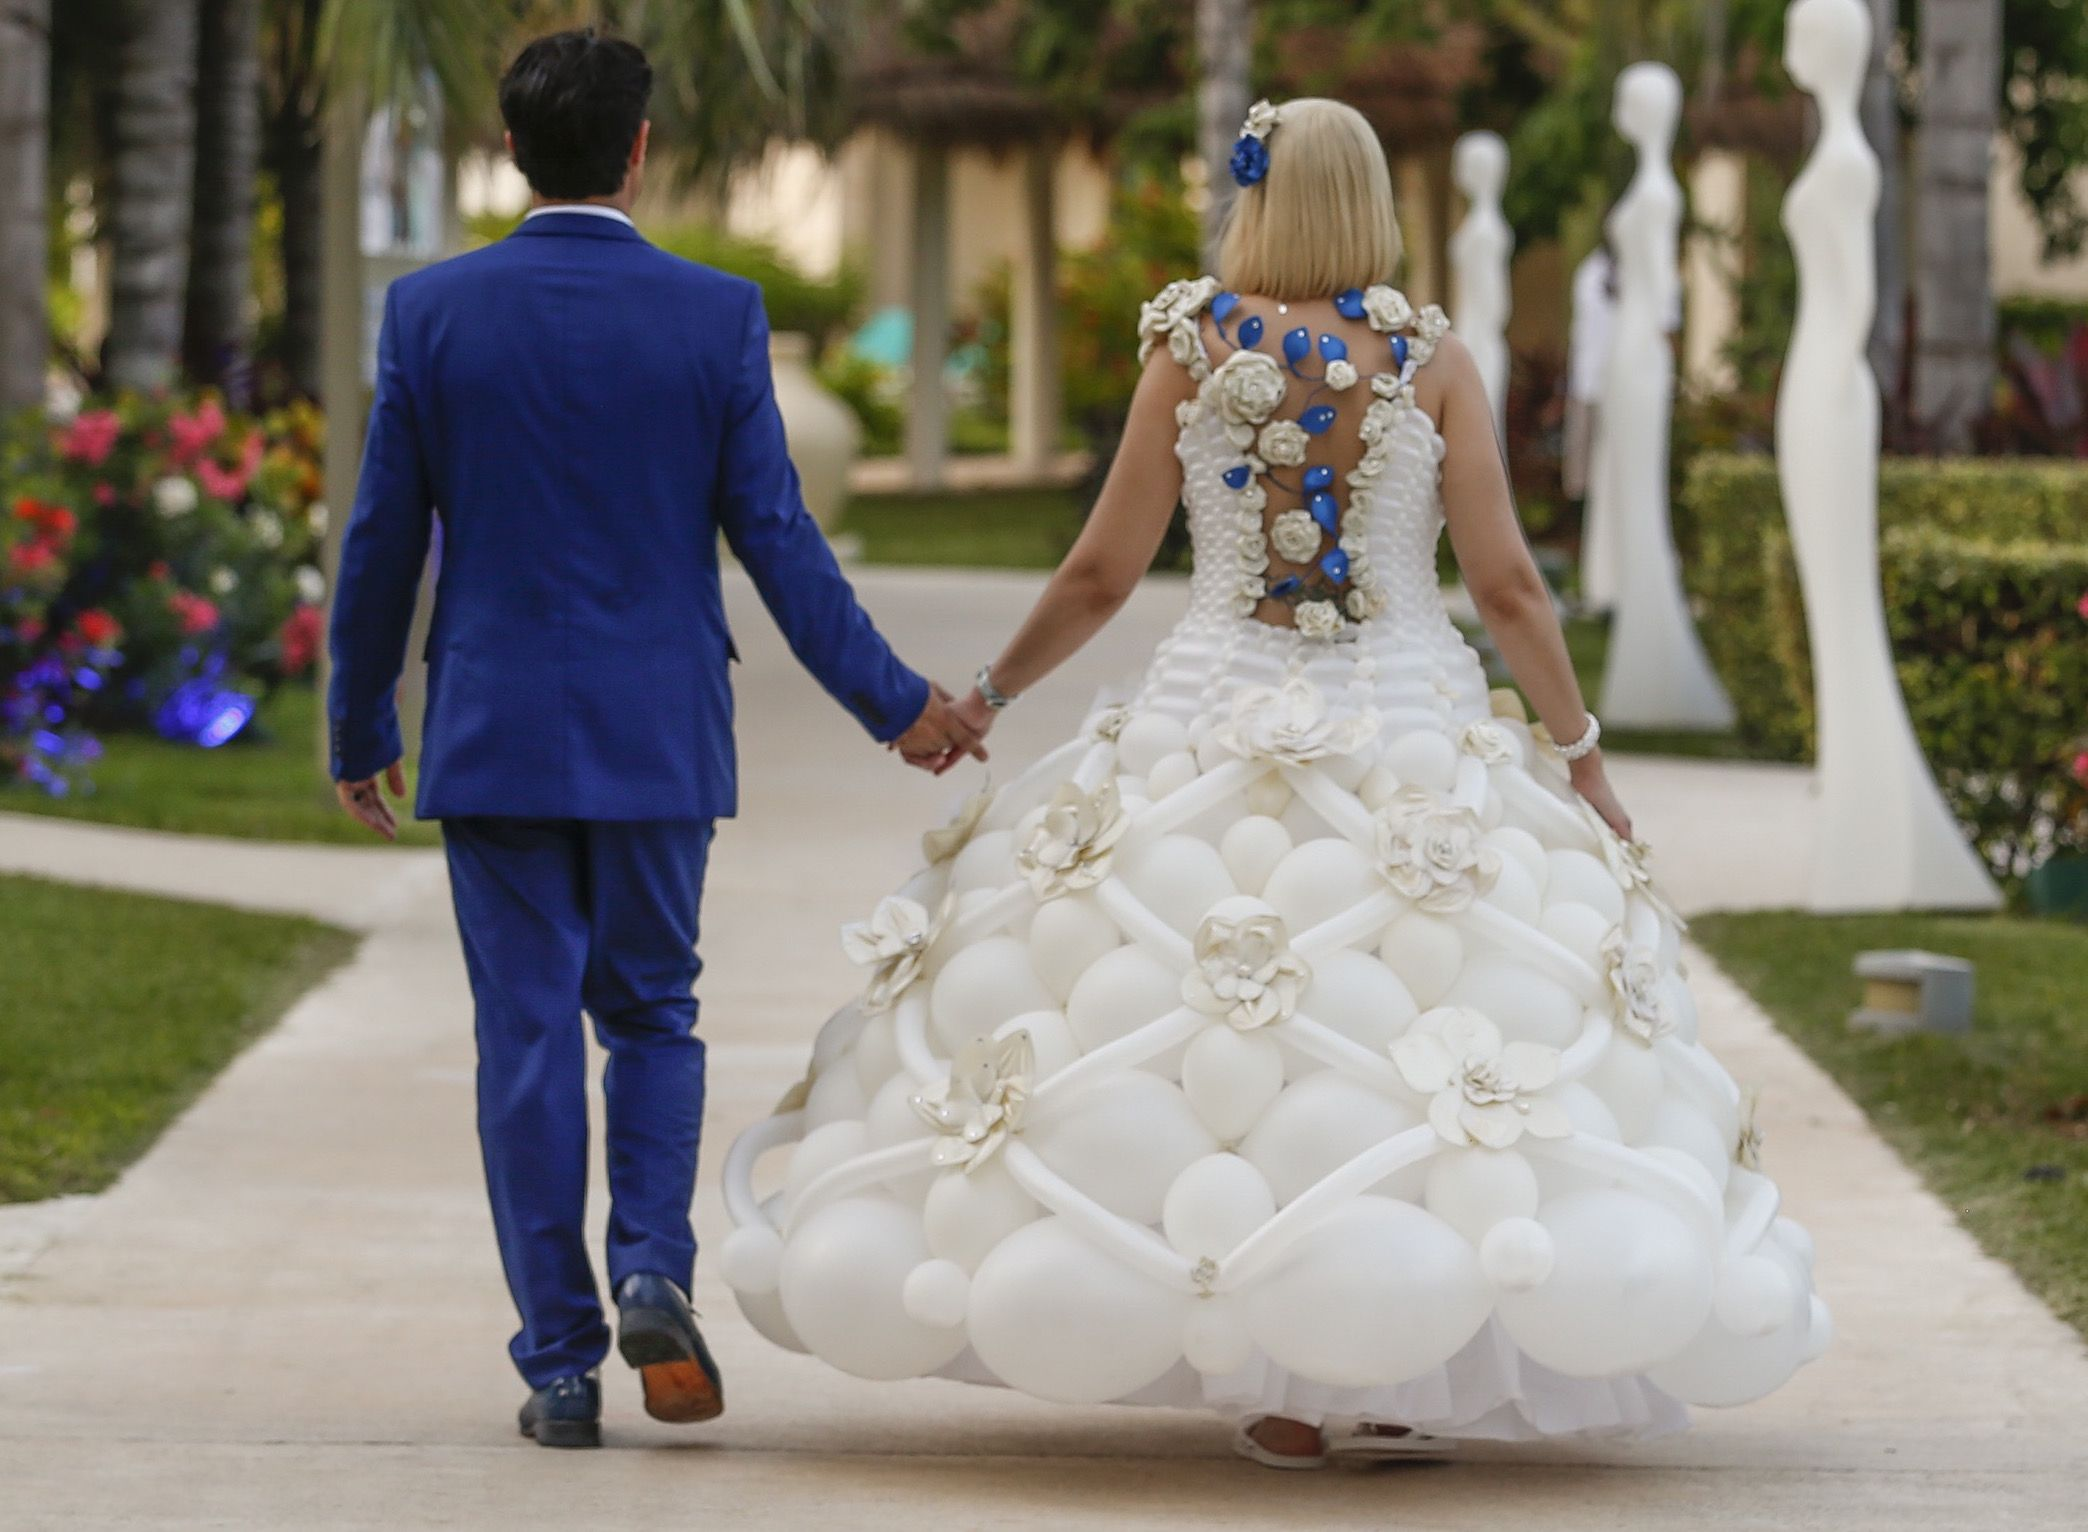 Tawney B Creates A Completely Unique Wedding Balloon Dress For A